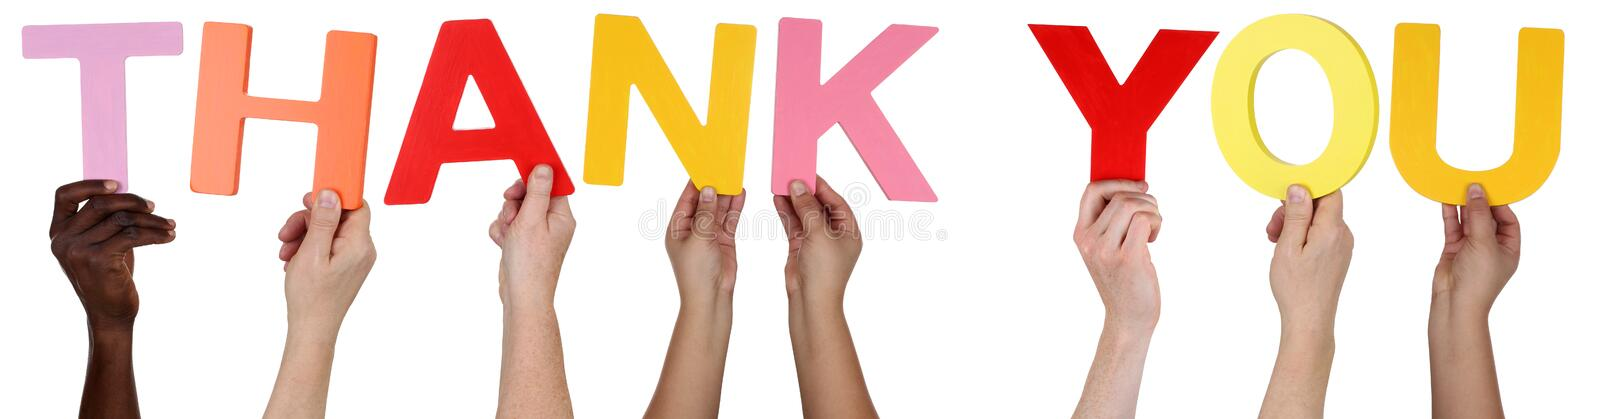 Download Multi Ethnic Group Of People Holding The Word Thank You Stock Photo - Image of people, letters: 53668378